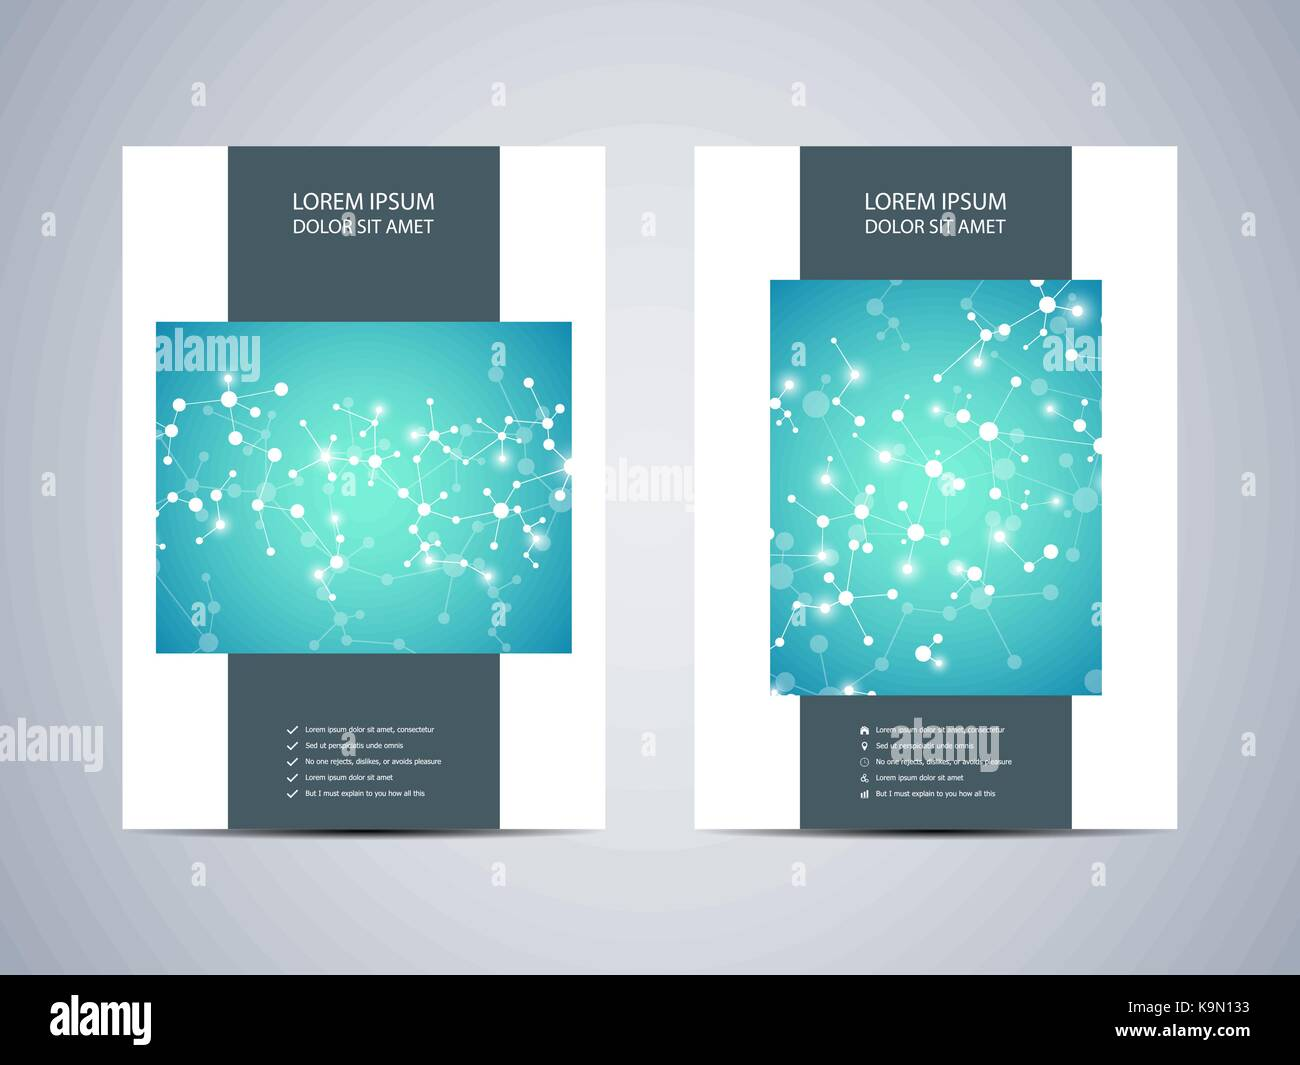 Brochure template layout flyer cover annual report magazine in brochure template layout flyer cover annual report magazine in a4 size structure of molecular particles and atom polygonal abstract background saigontimesfo